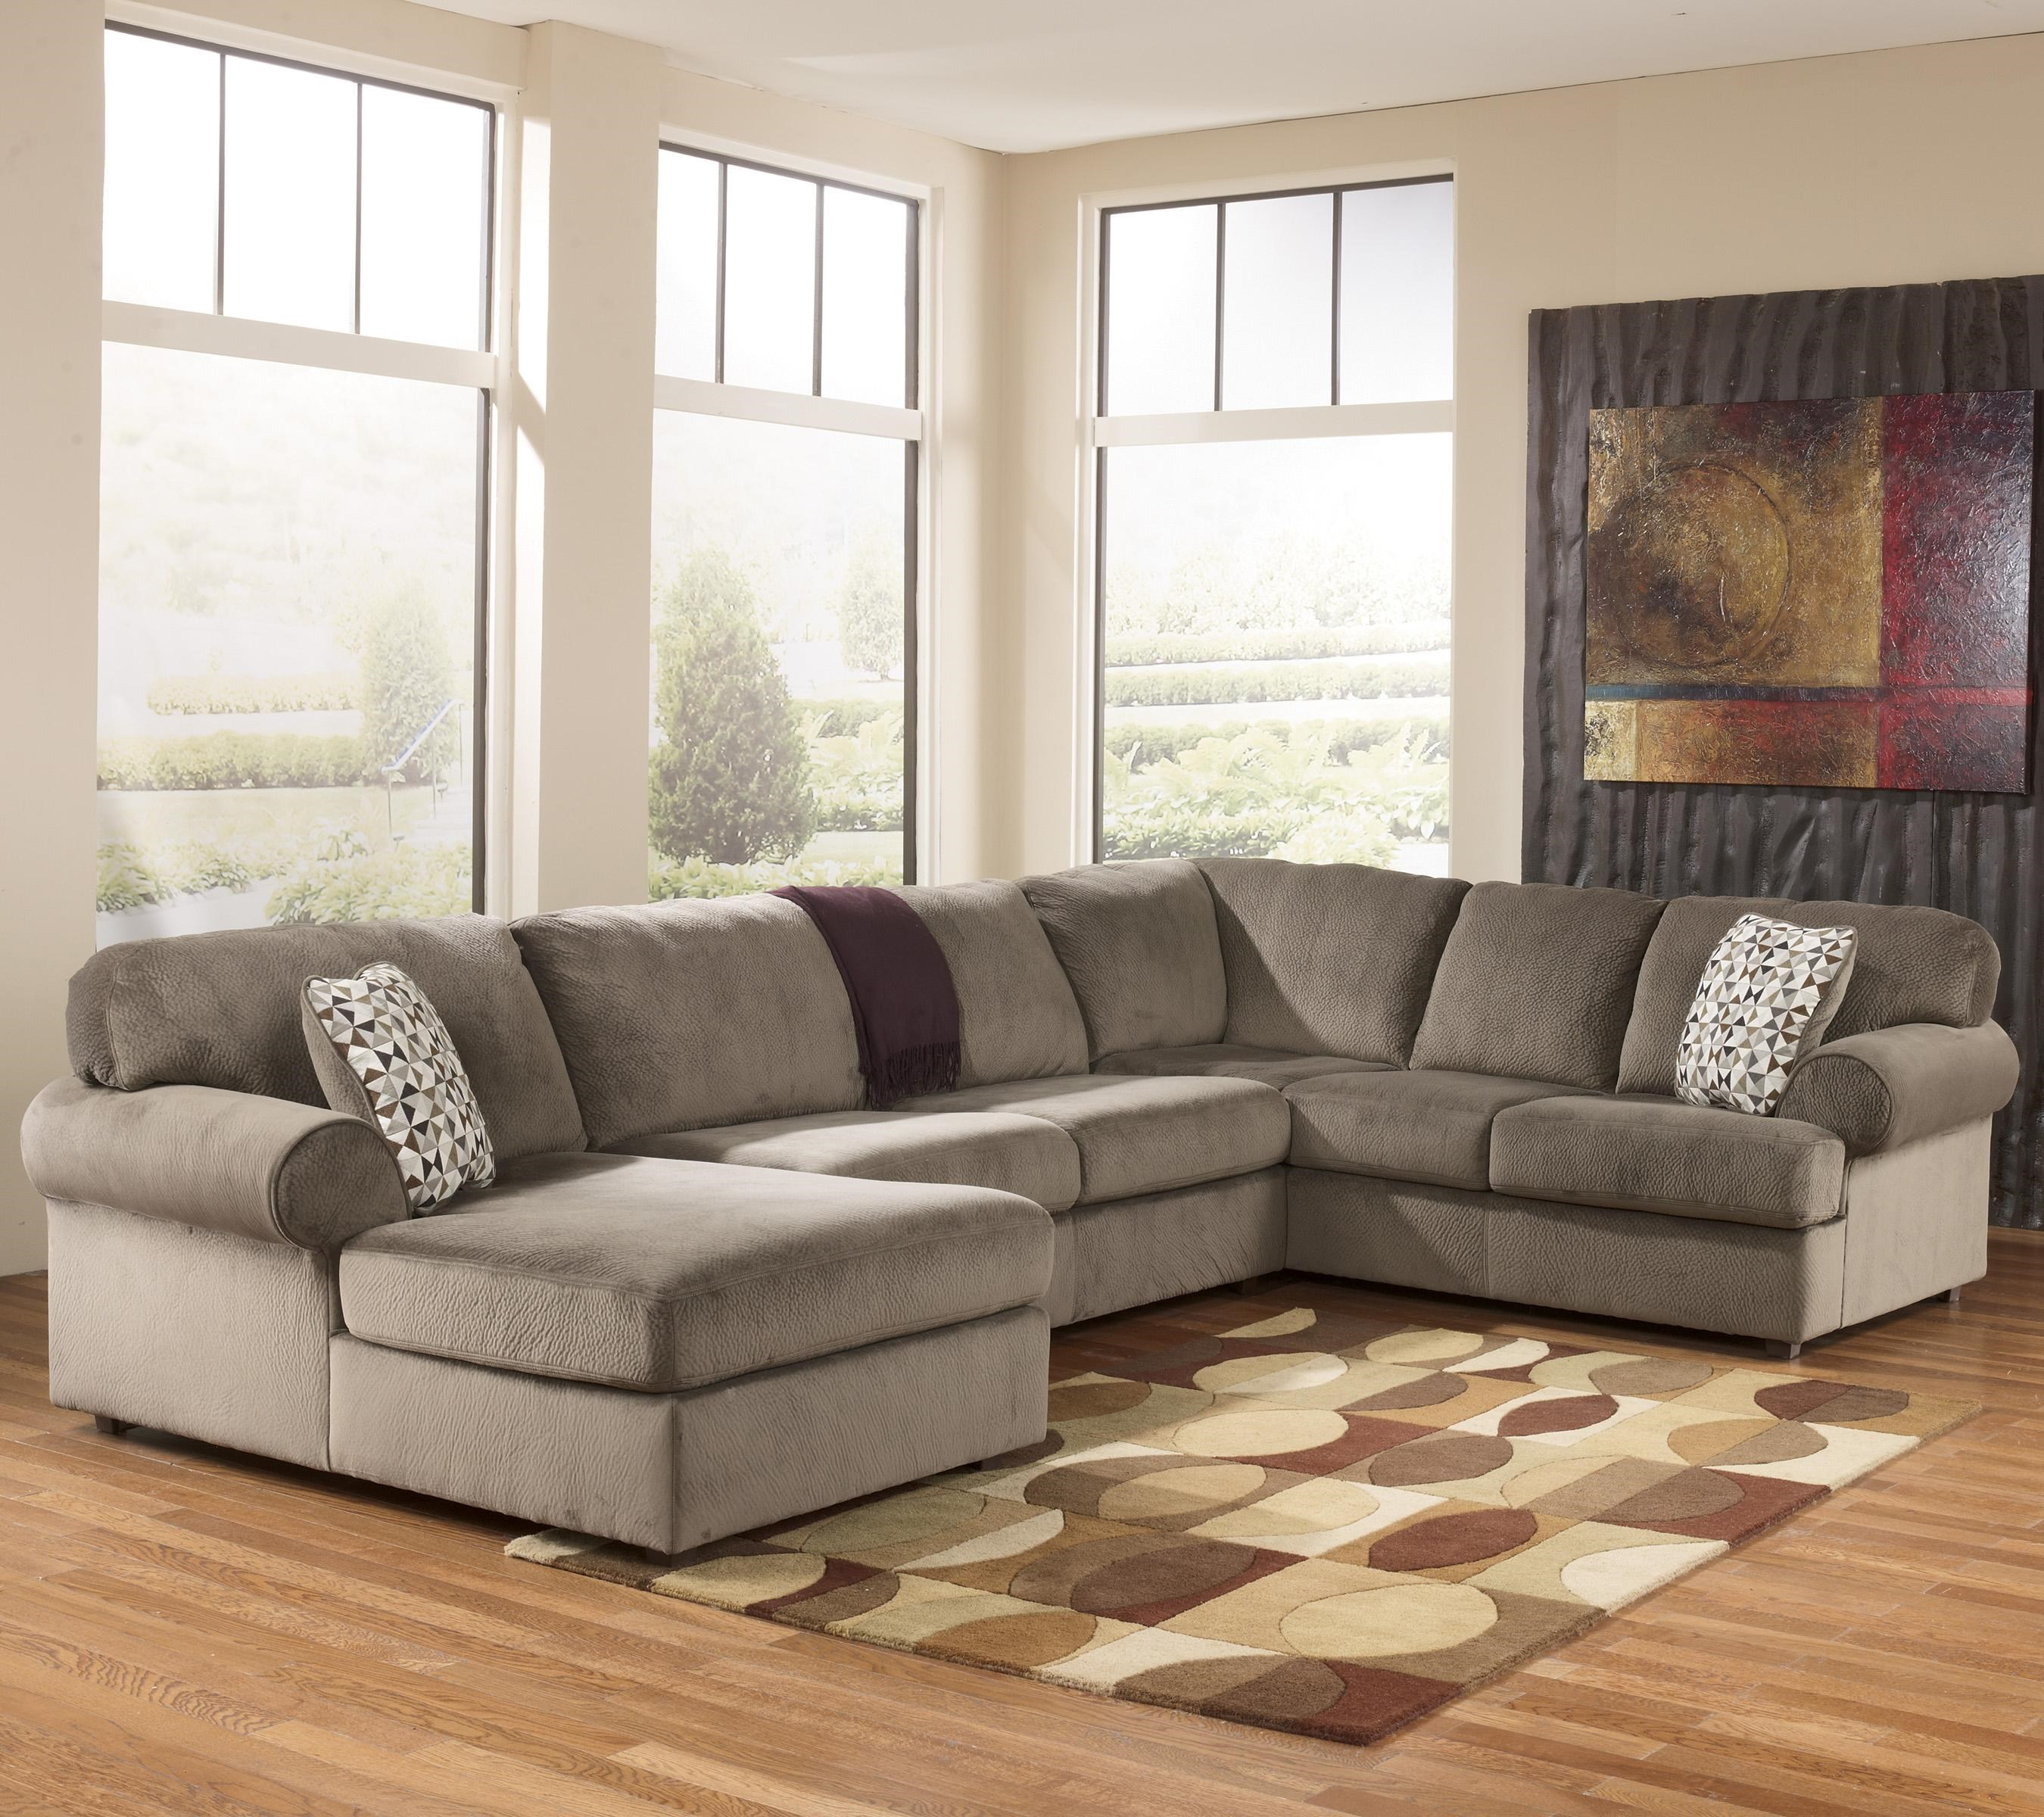 Mesmerizing Ashley Furniture Sectional Couch 89